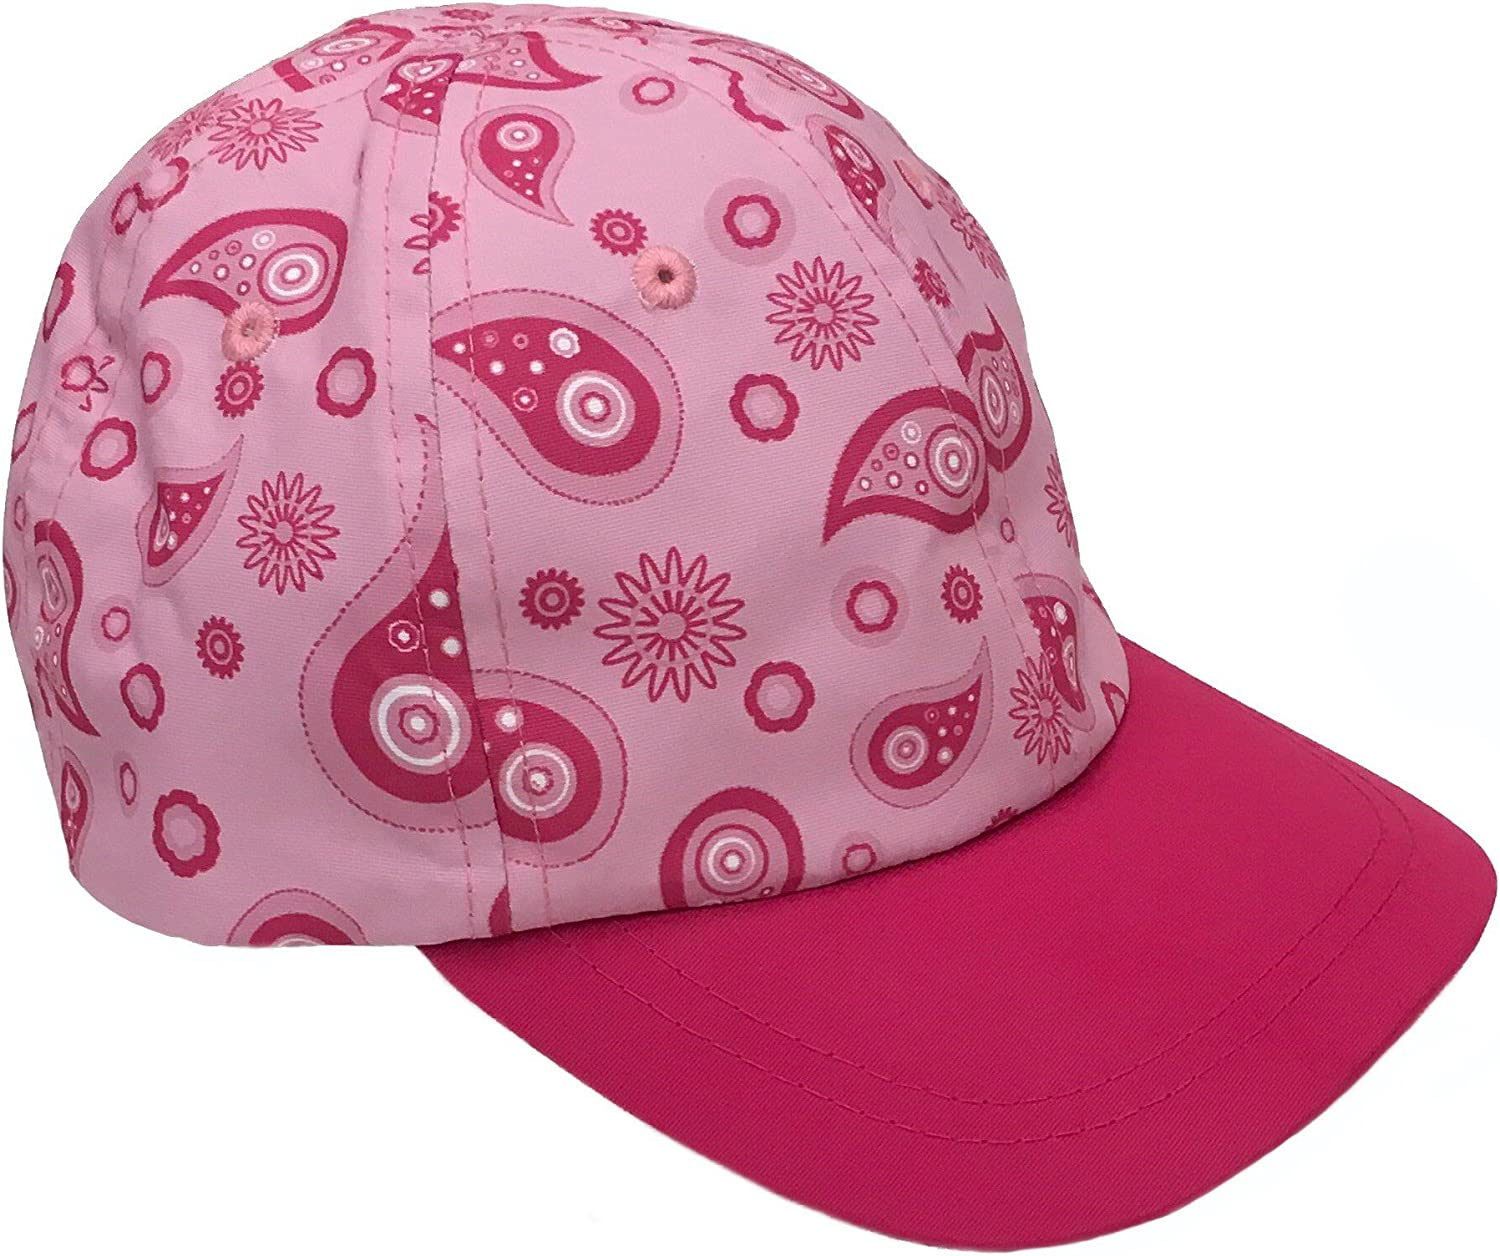 Bienzoe Girls Cotton Heart Printed Baseball Adjustable Cap Sun Visors Flat Hat